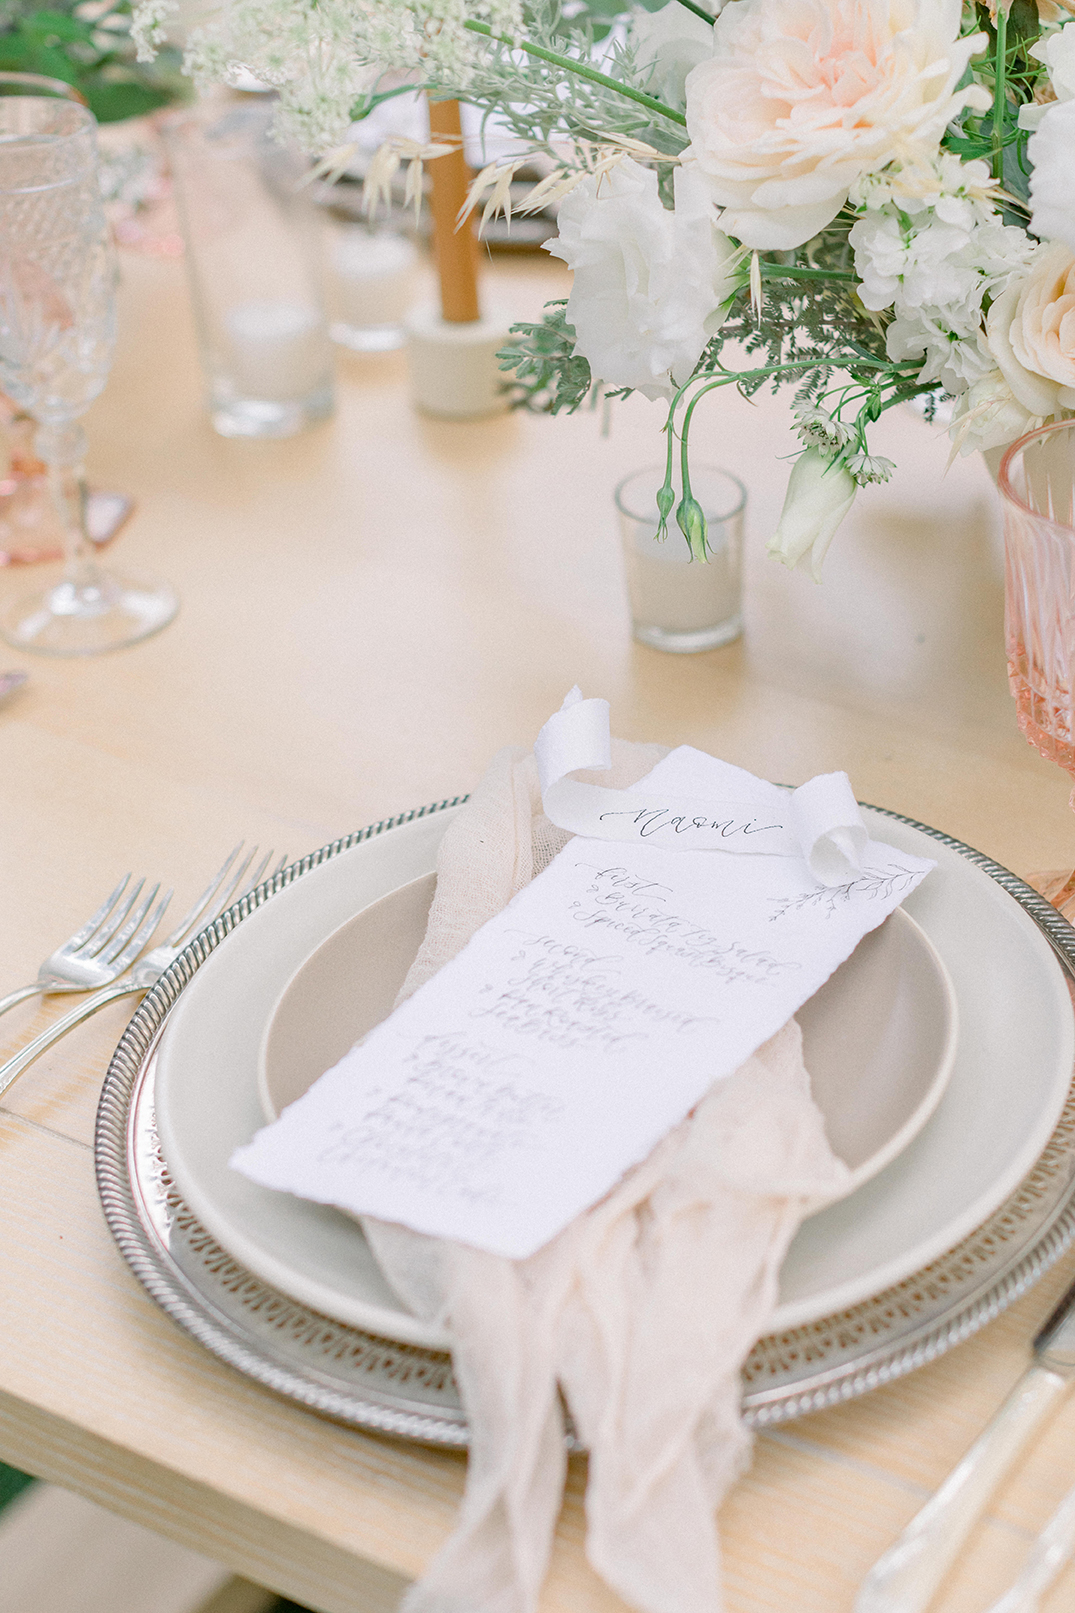 Ballerina Themed Styled Wedding Shoot with Stephanie Weber Photography – Handmade Paper Reception Dinner Menu by Sam Allen Creates with Calligraphy Scroll Placecards 2